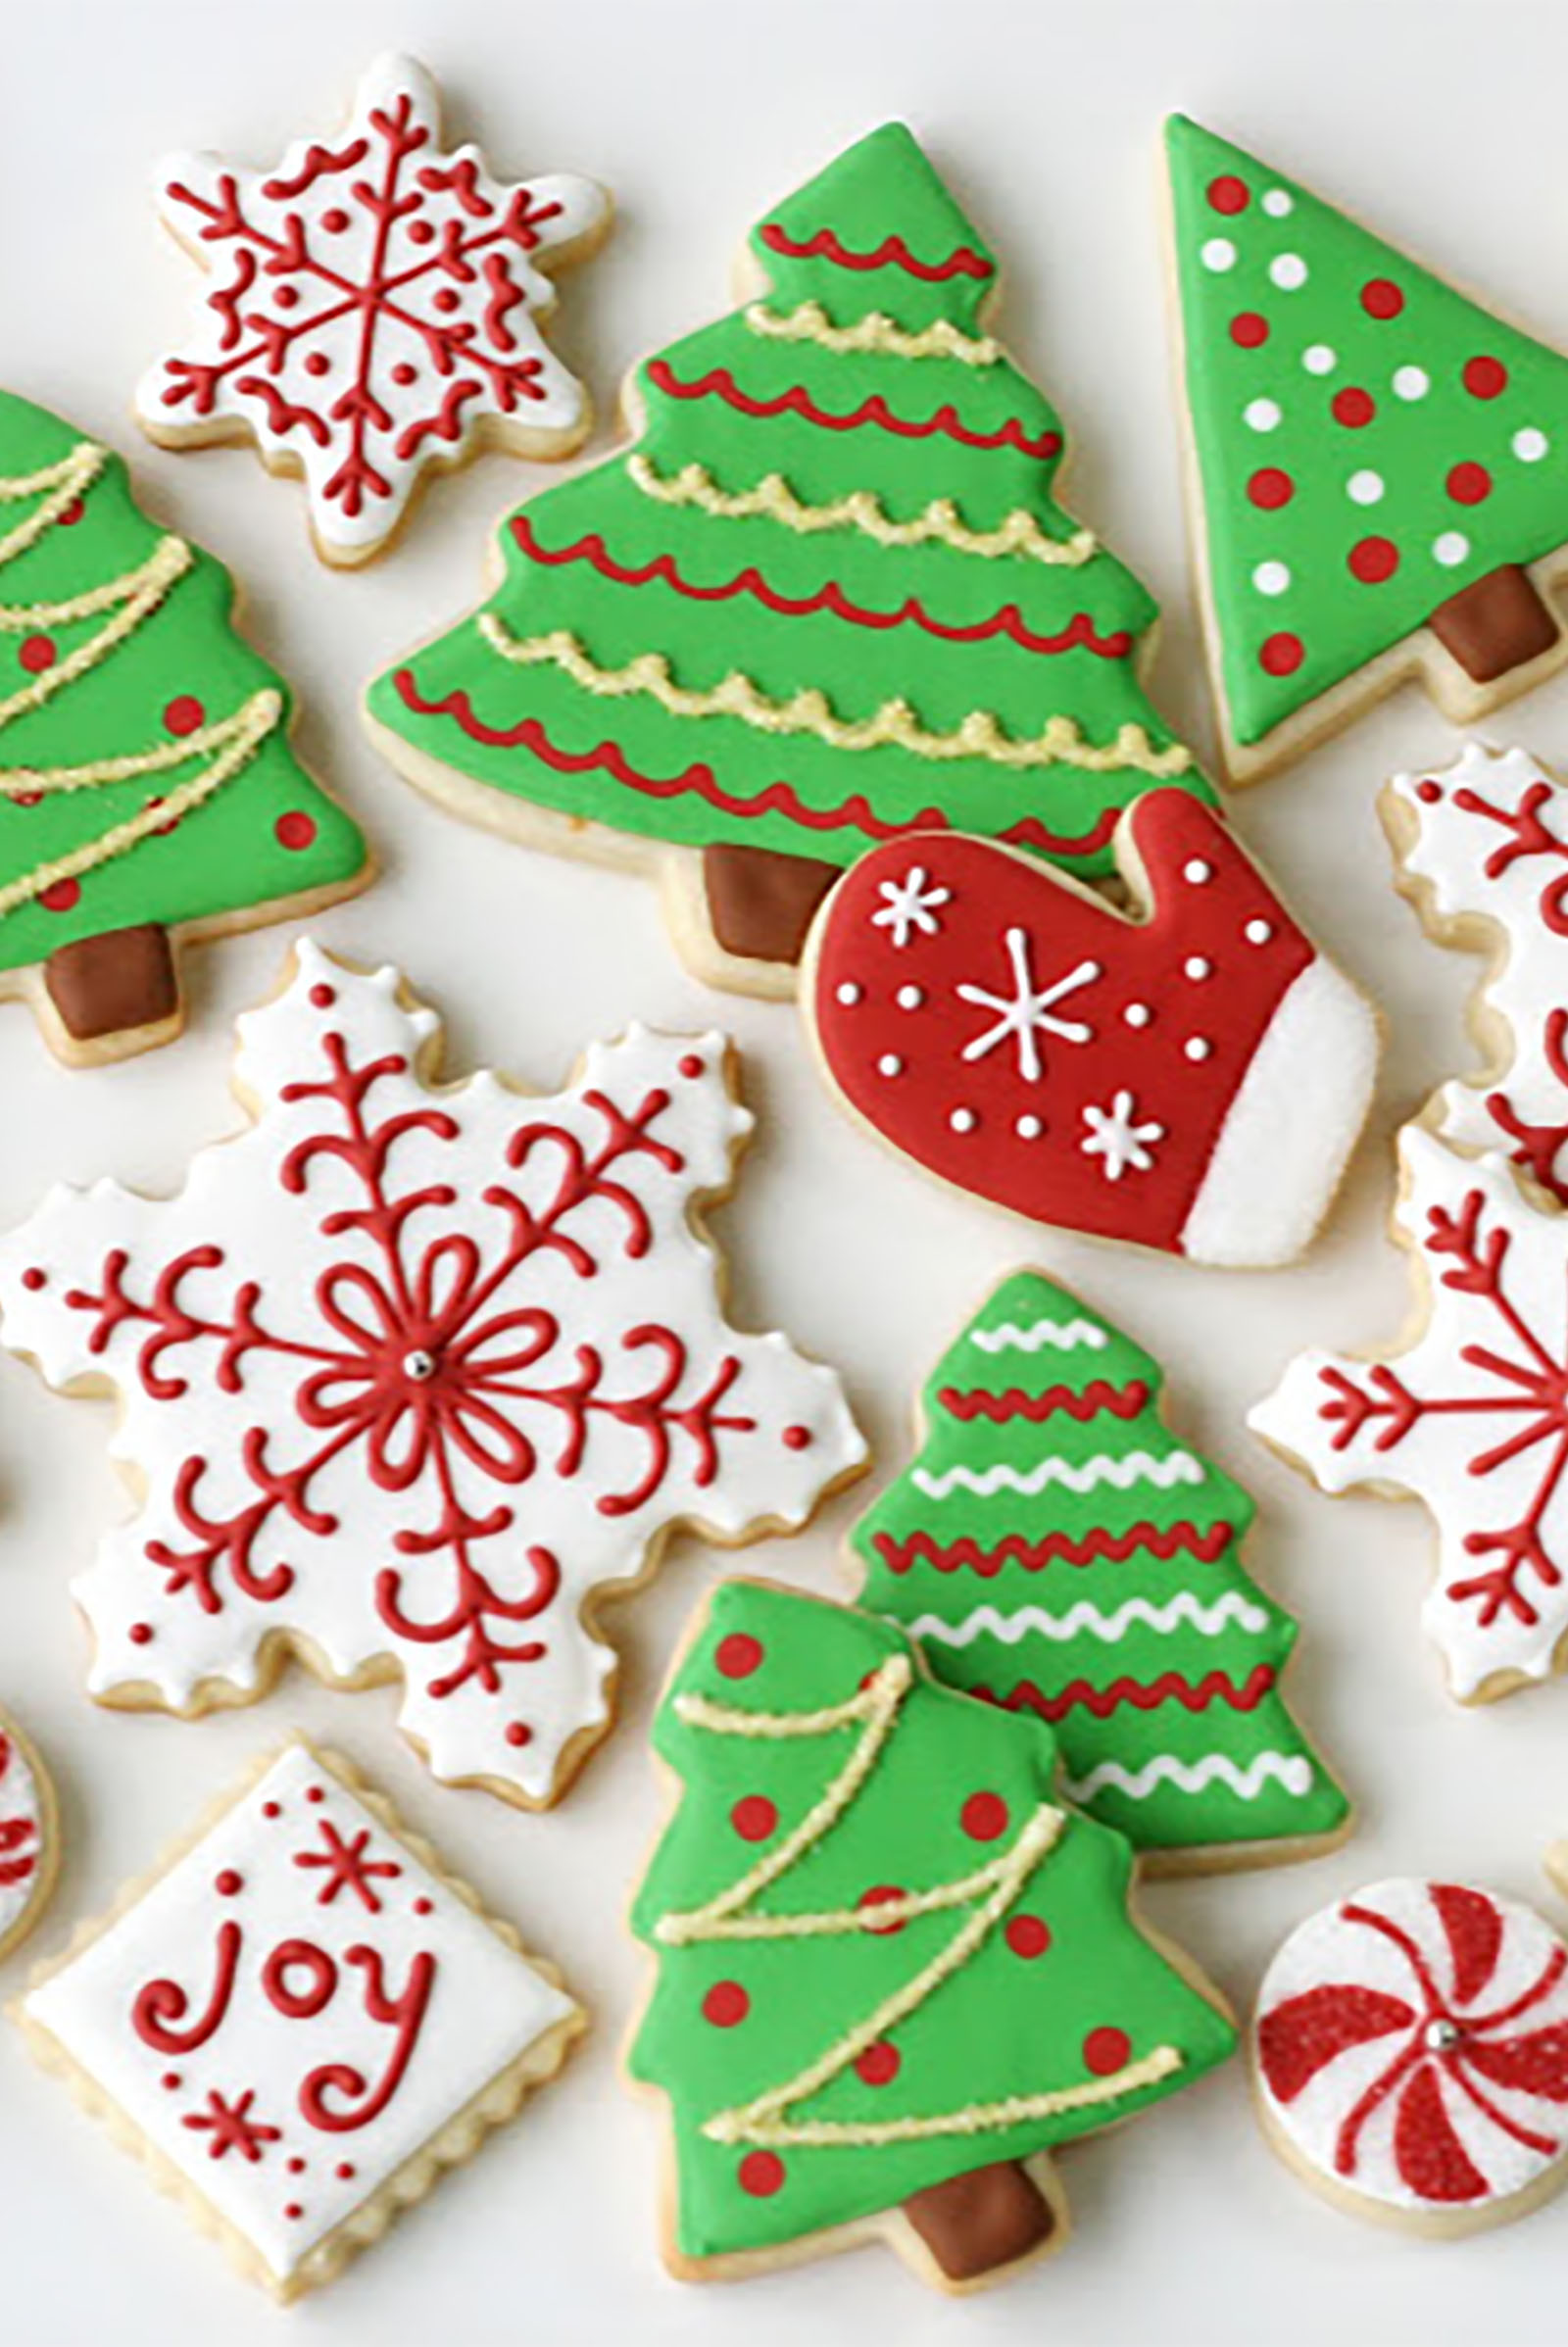 Decorating Christmas Cookies  Ideas How To Decorate Christmas Cookies